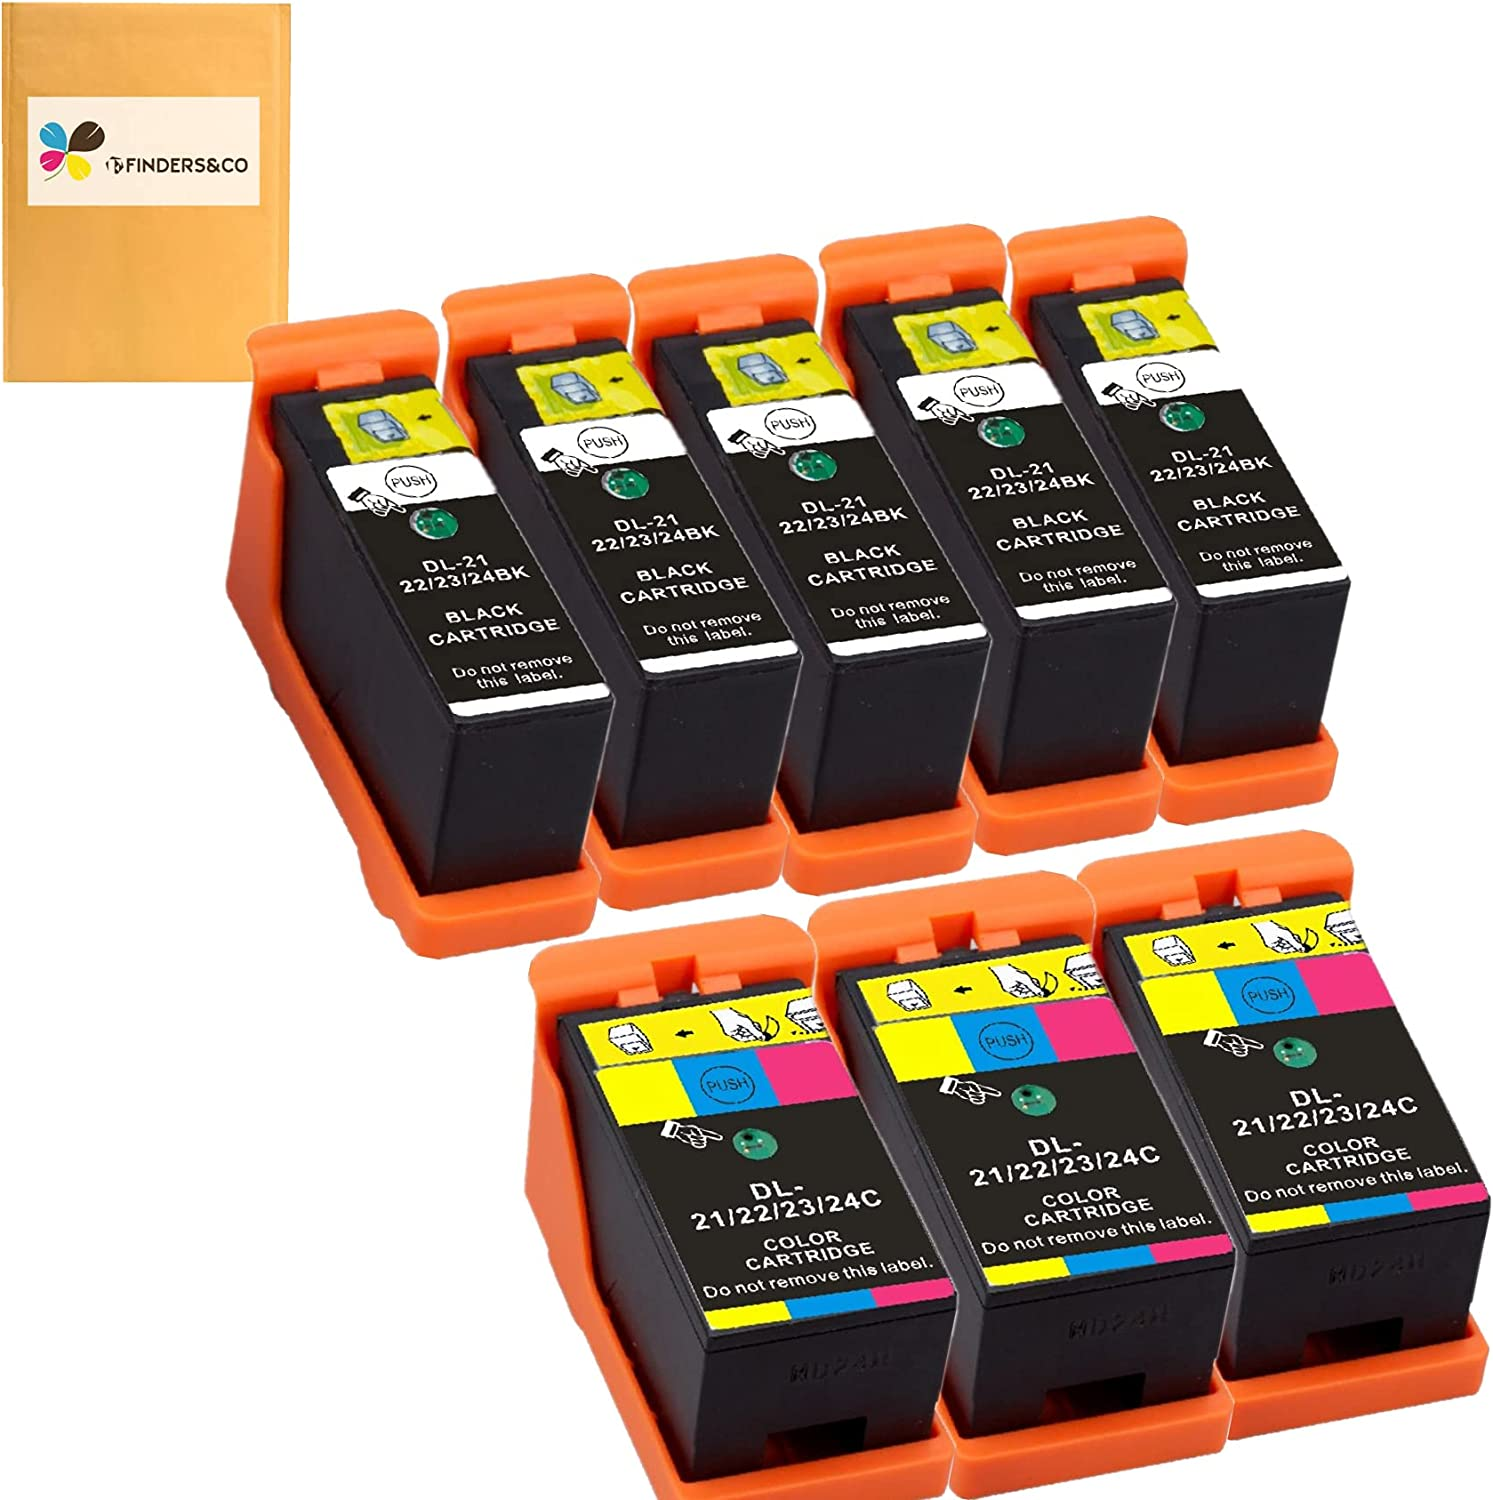 8-Pack Compatible Dell Series 21 Ink Cartridges Replacement for DELL V313W V515W P513W P713W V715W Printer (5BK, 3Color)